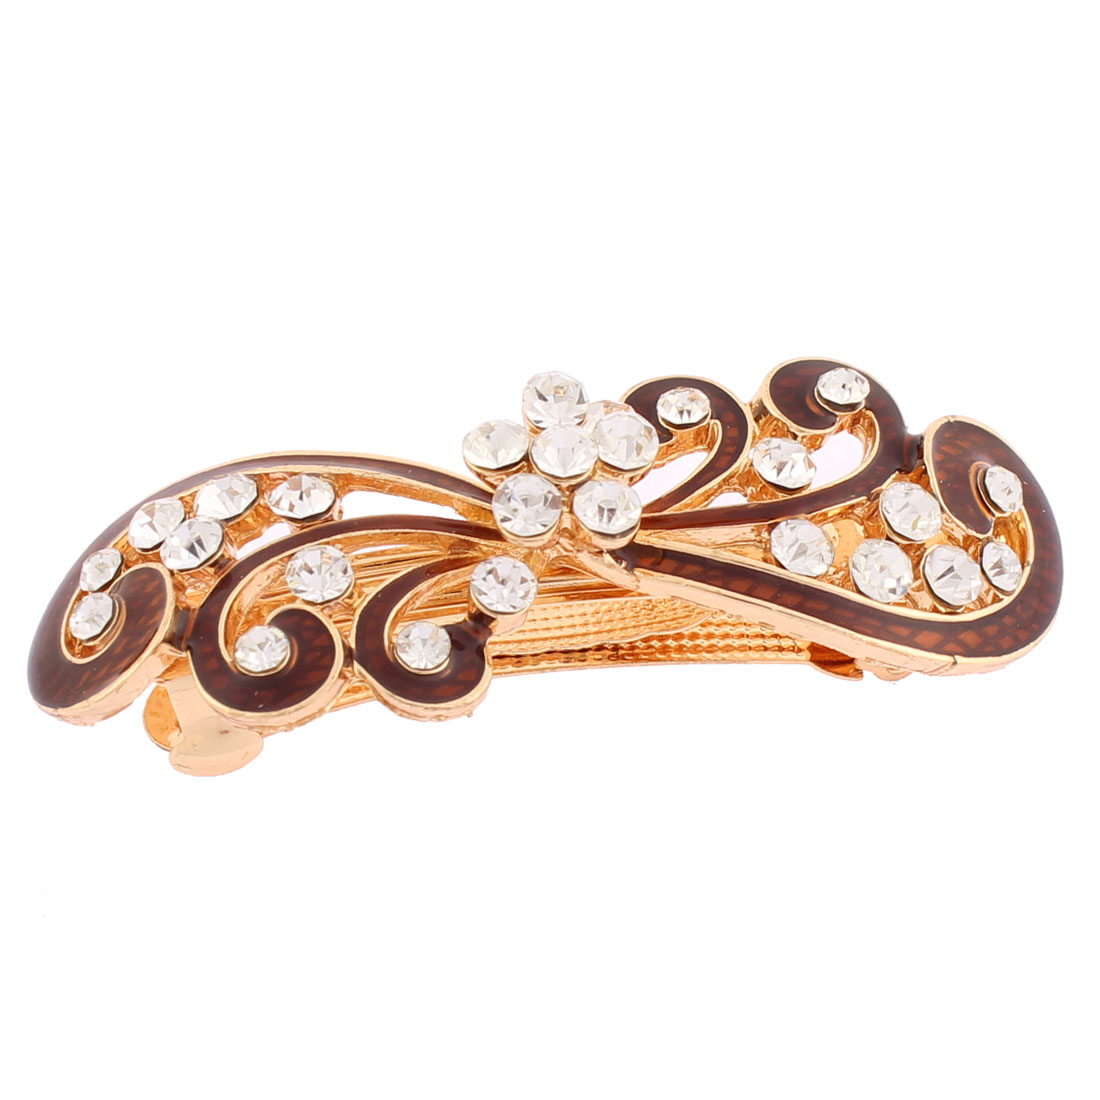 Women Plastic Rhinestones Inlaid Brown Floral Accent French Barrette Style Metal Hair Clip Hairpin Decor Gold Tone